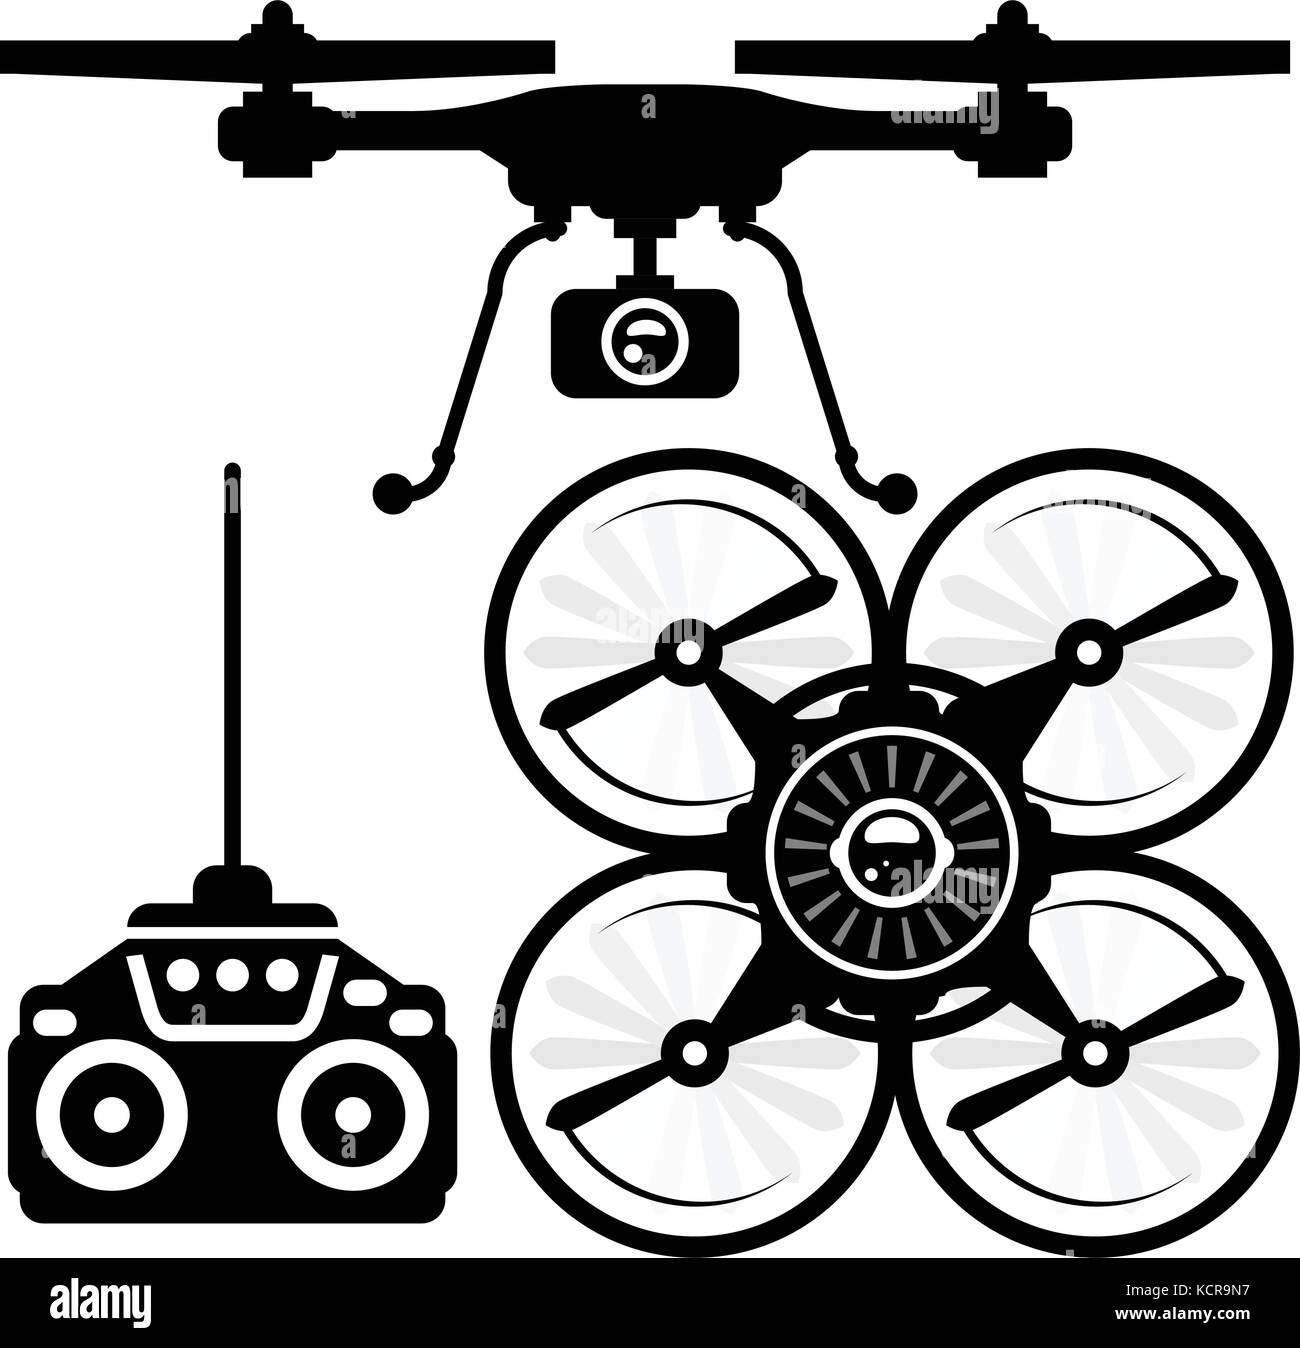 Silhouette of quadcopter and remote control (joystick) - Stock Vector